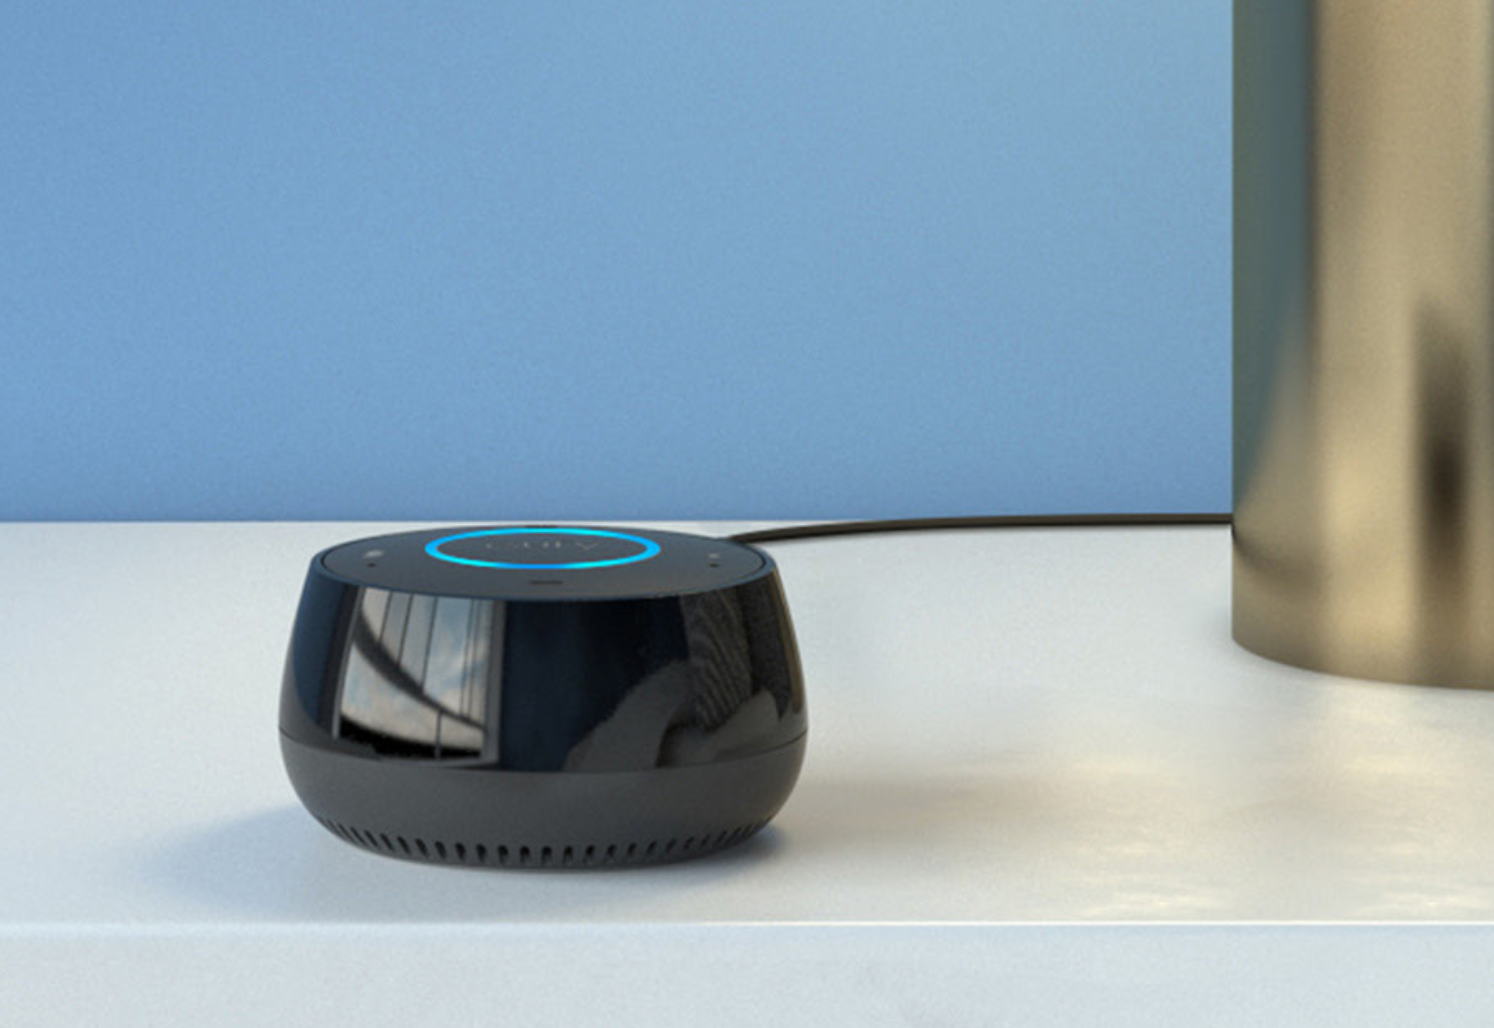 Anker piggybacks on Alexa to undercut the Amazon Echo Dot